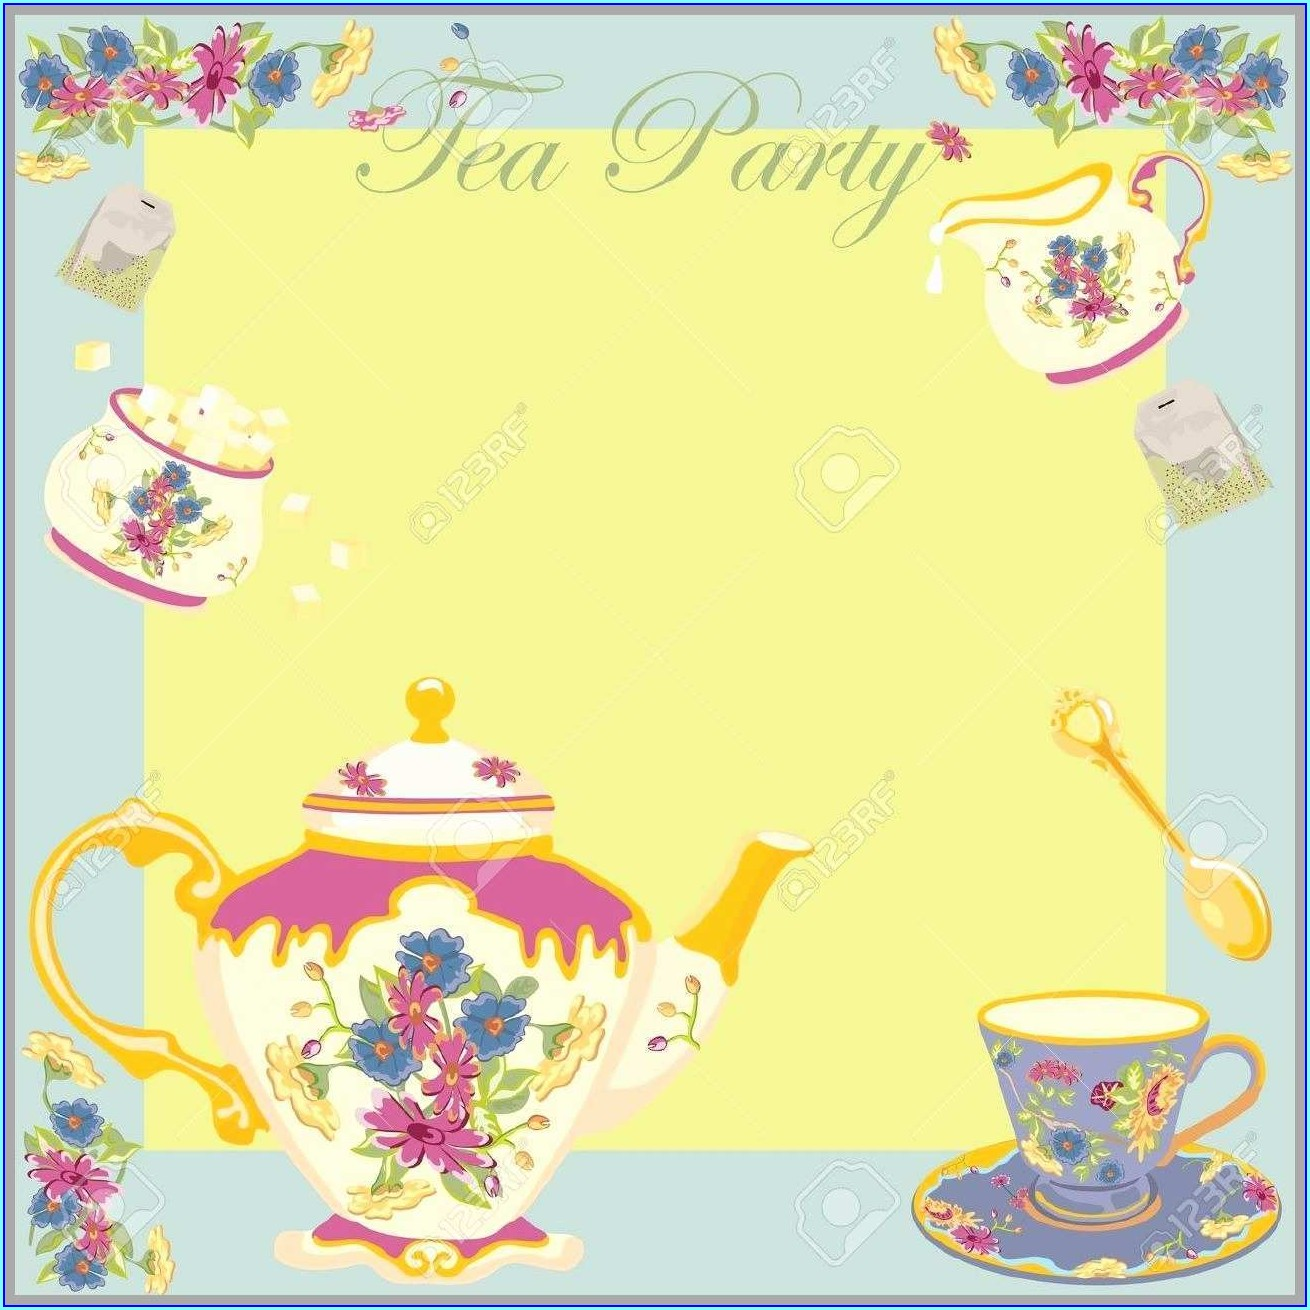 Blank Downloadable High Tea Invitation Template